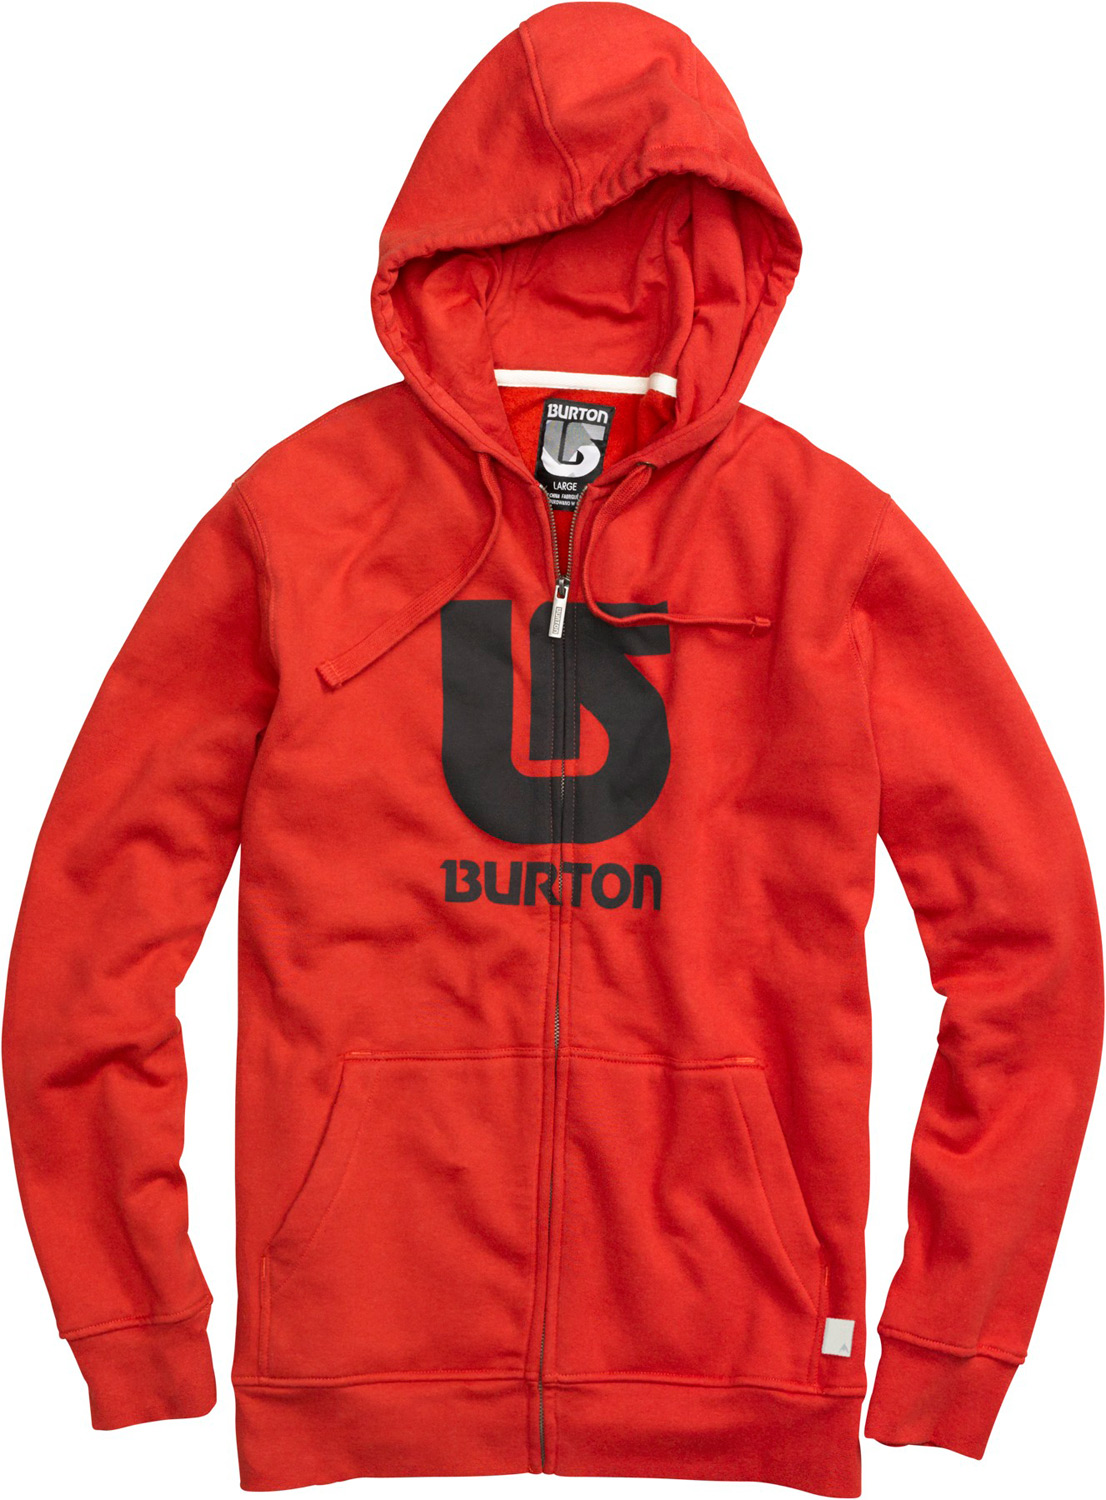 Snowboard Key Features of the Burton Logo Vertical Fullzip Hoodie: 80% Cotton, 20% Polyester, 300G Fleece Kangaroo Pocket with Interior Media Stash Screen Print on Chest Regular Fit - $35.95